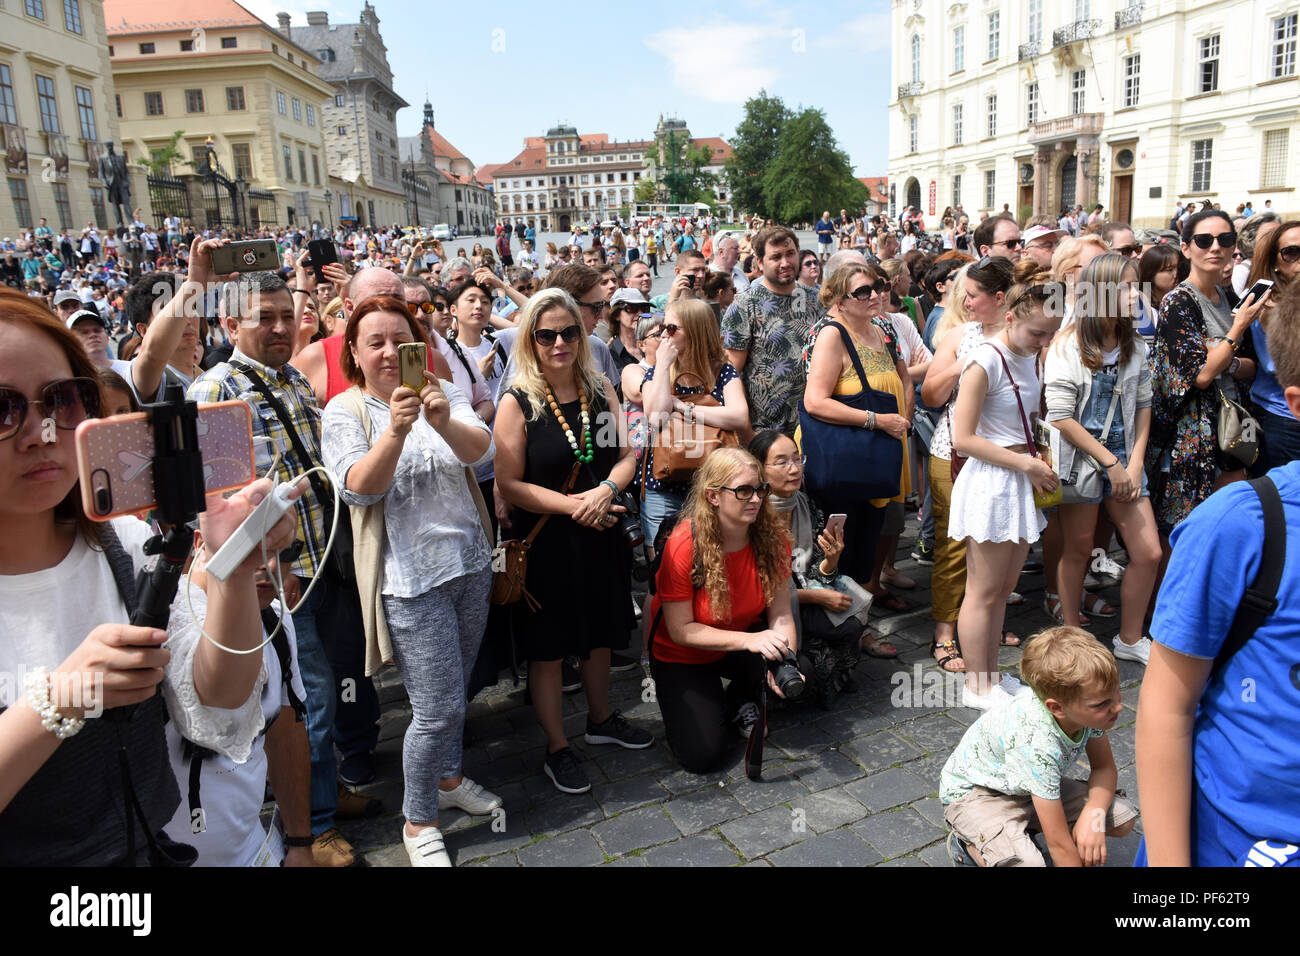 Crowds of tourists watching the Changing of the Guard ceremony at Prague Castle, Czech Republic. Stock Photo